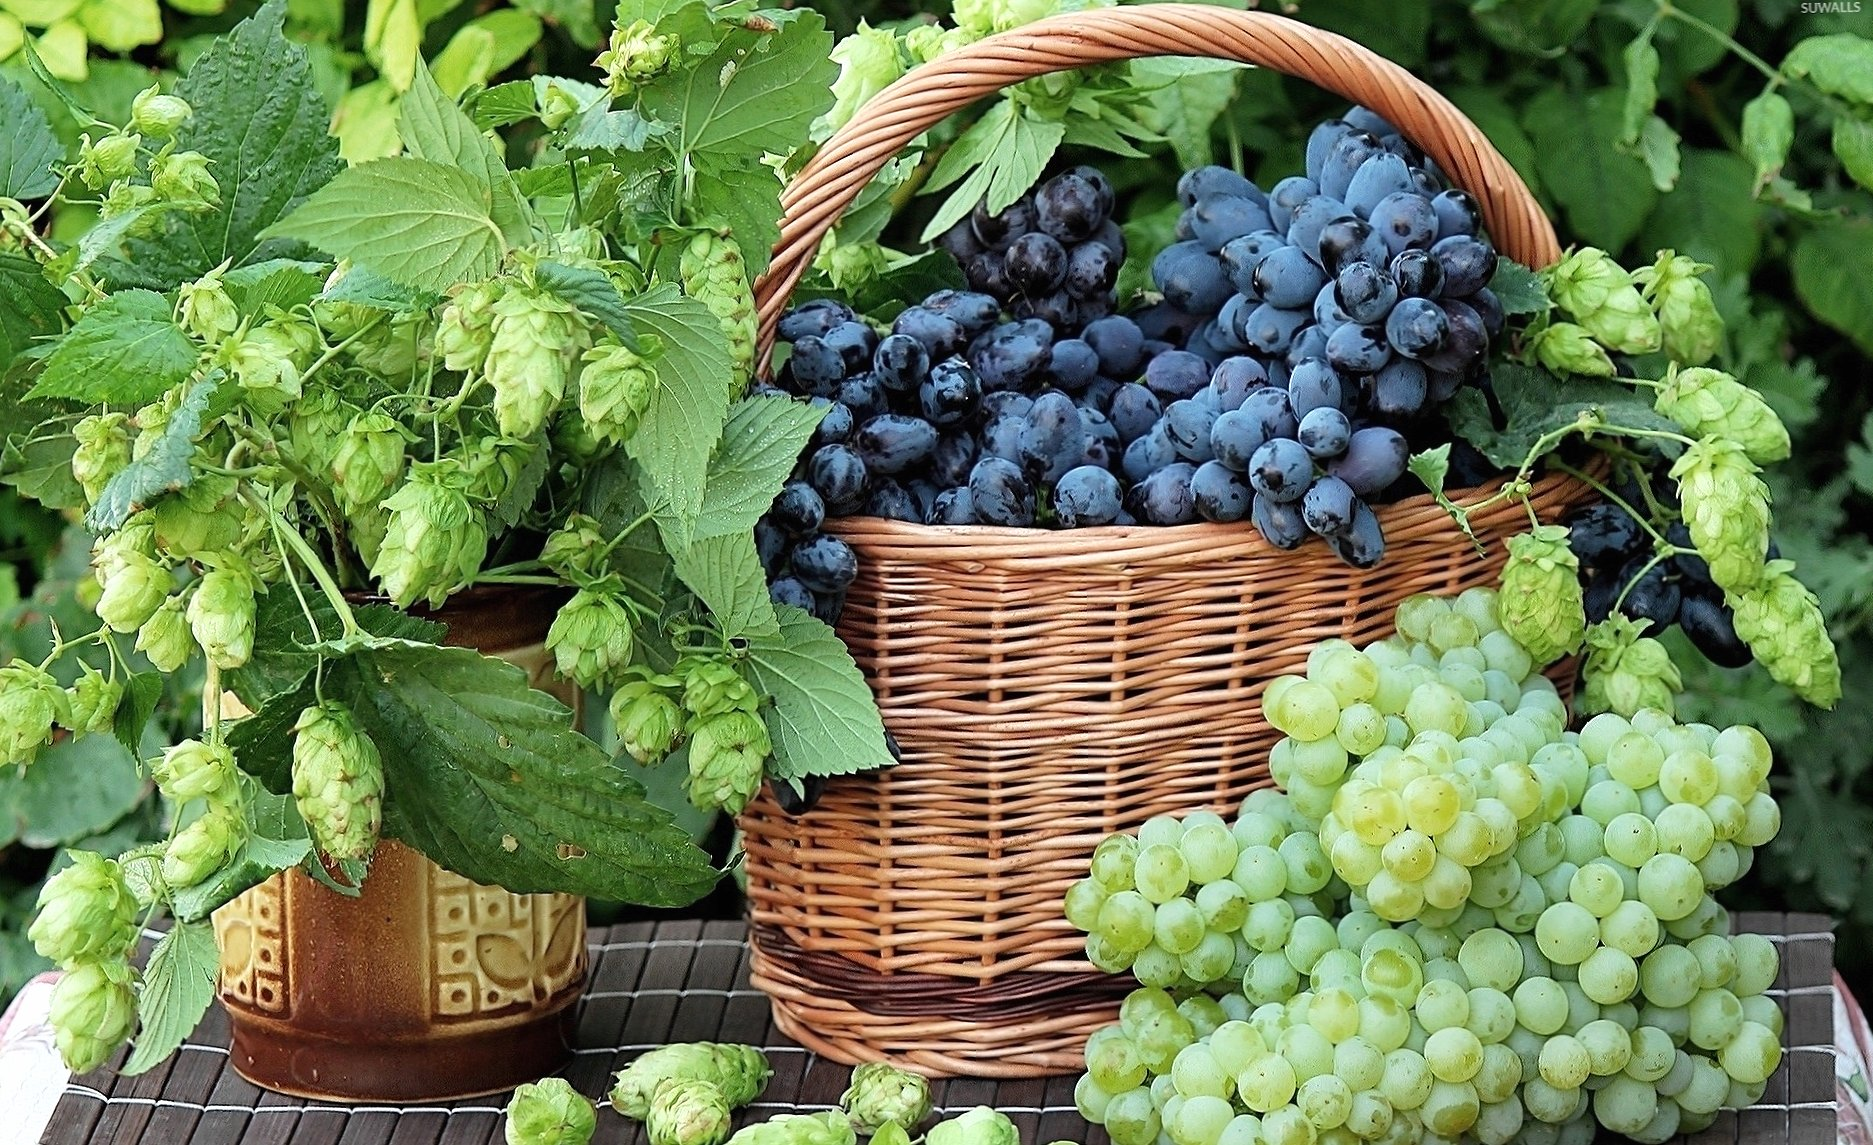 Black grapes in a straw basket wallpapers HD quality